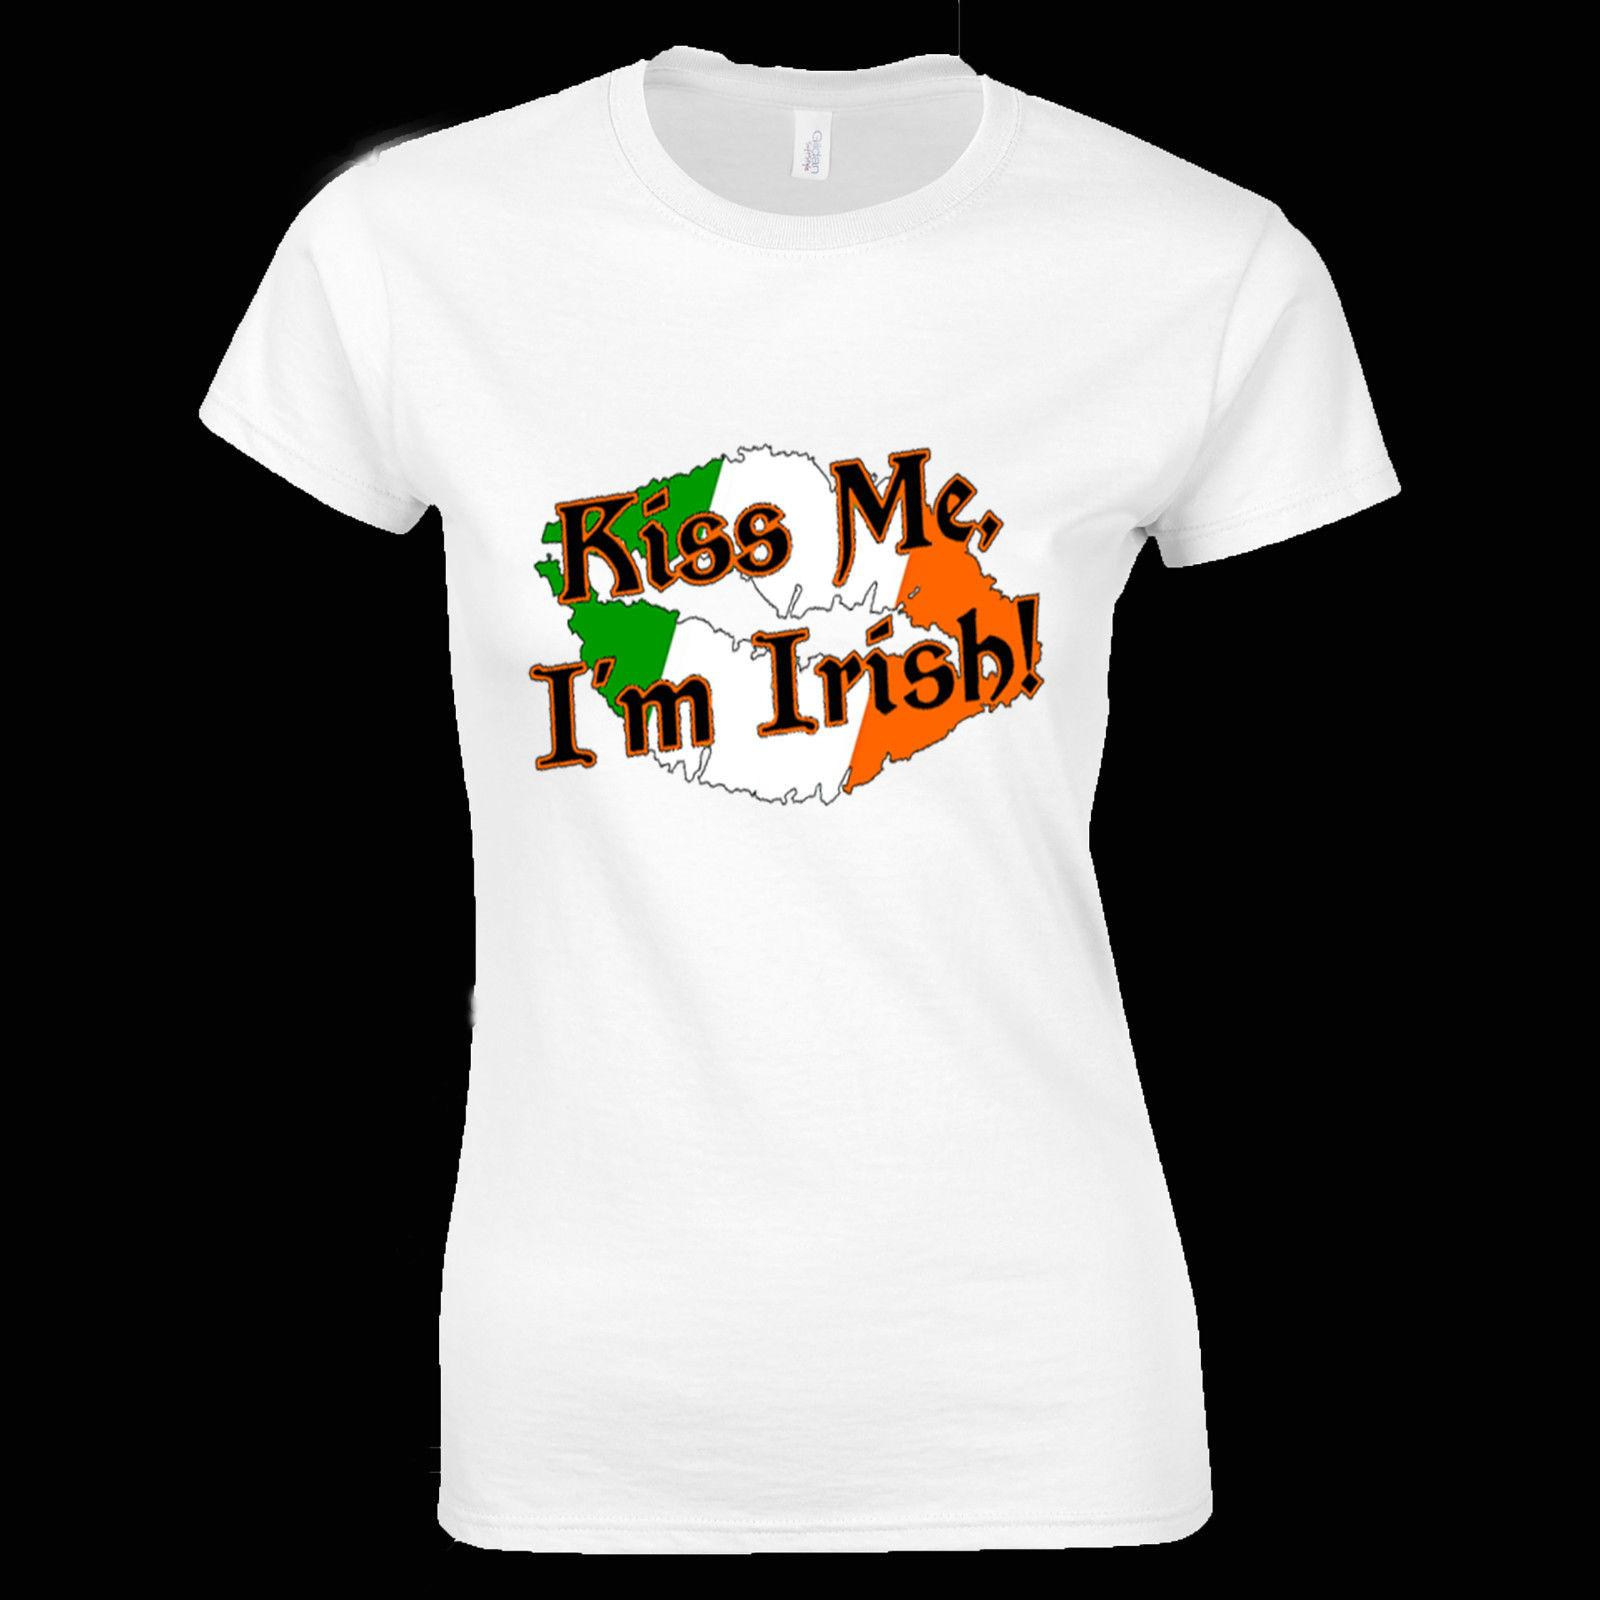 eef8d1c1 St Patricks Day T Shirt Kiss Me Im Irish Flag Shamrock Paddys Day Men Women  Kid New T Shirts Funny Tops Tee New Shirt Designs Best T Shirts From  Milemelo, ...